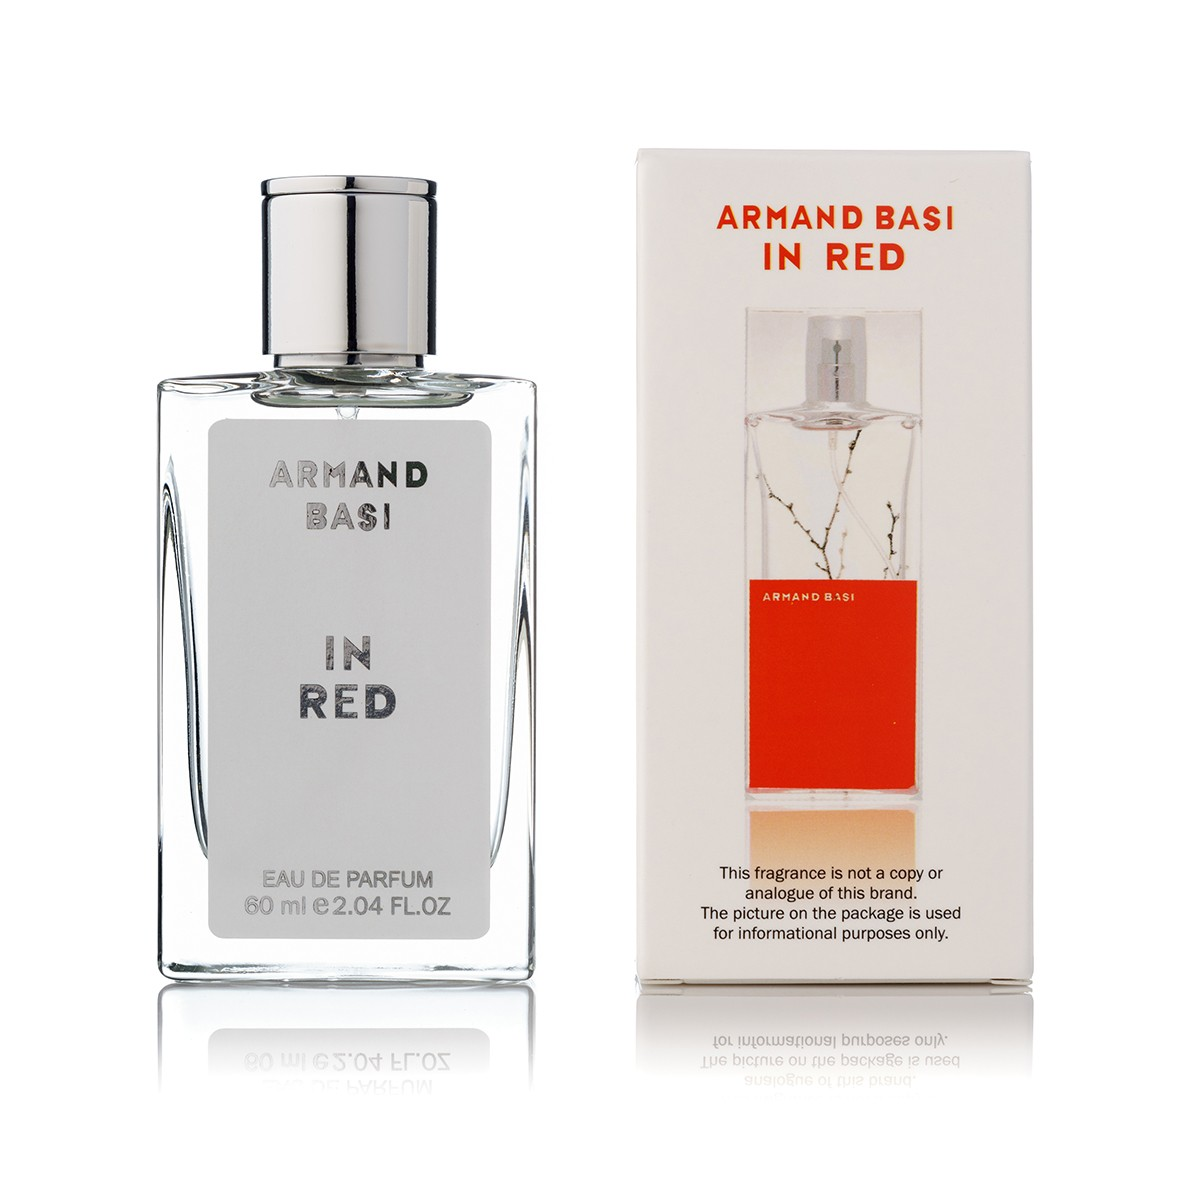 Armand Basi In Red edp 60 ml tester color box